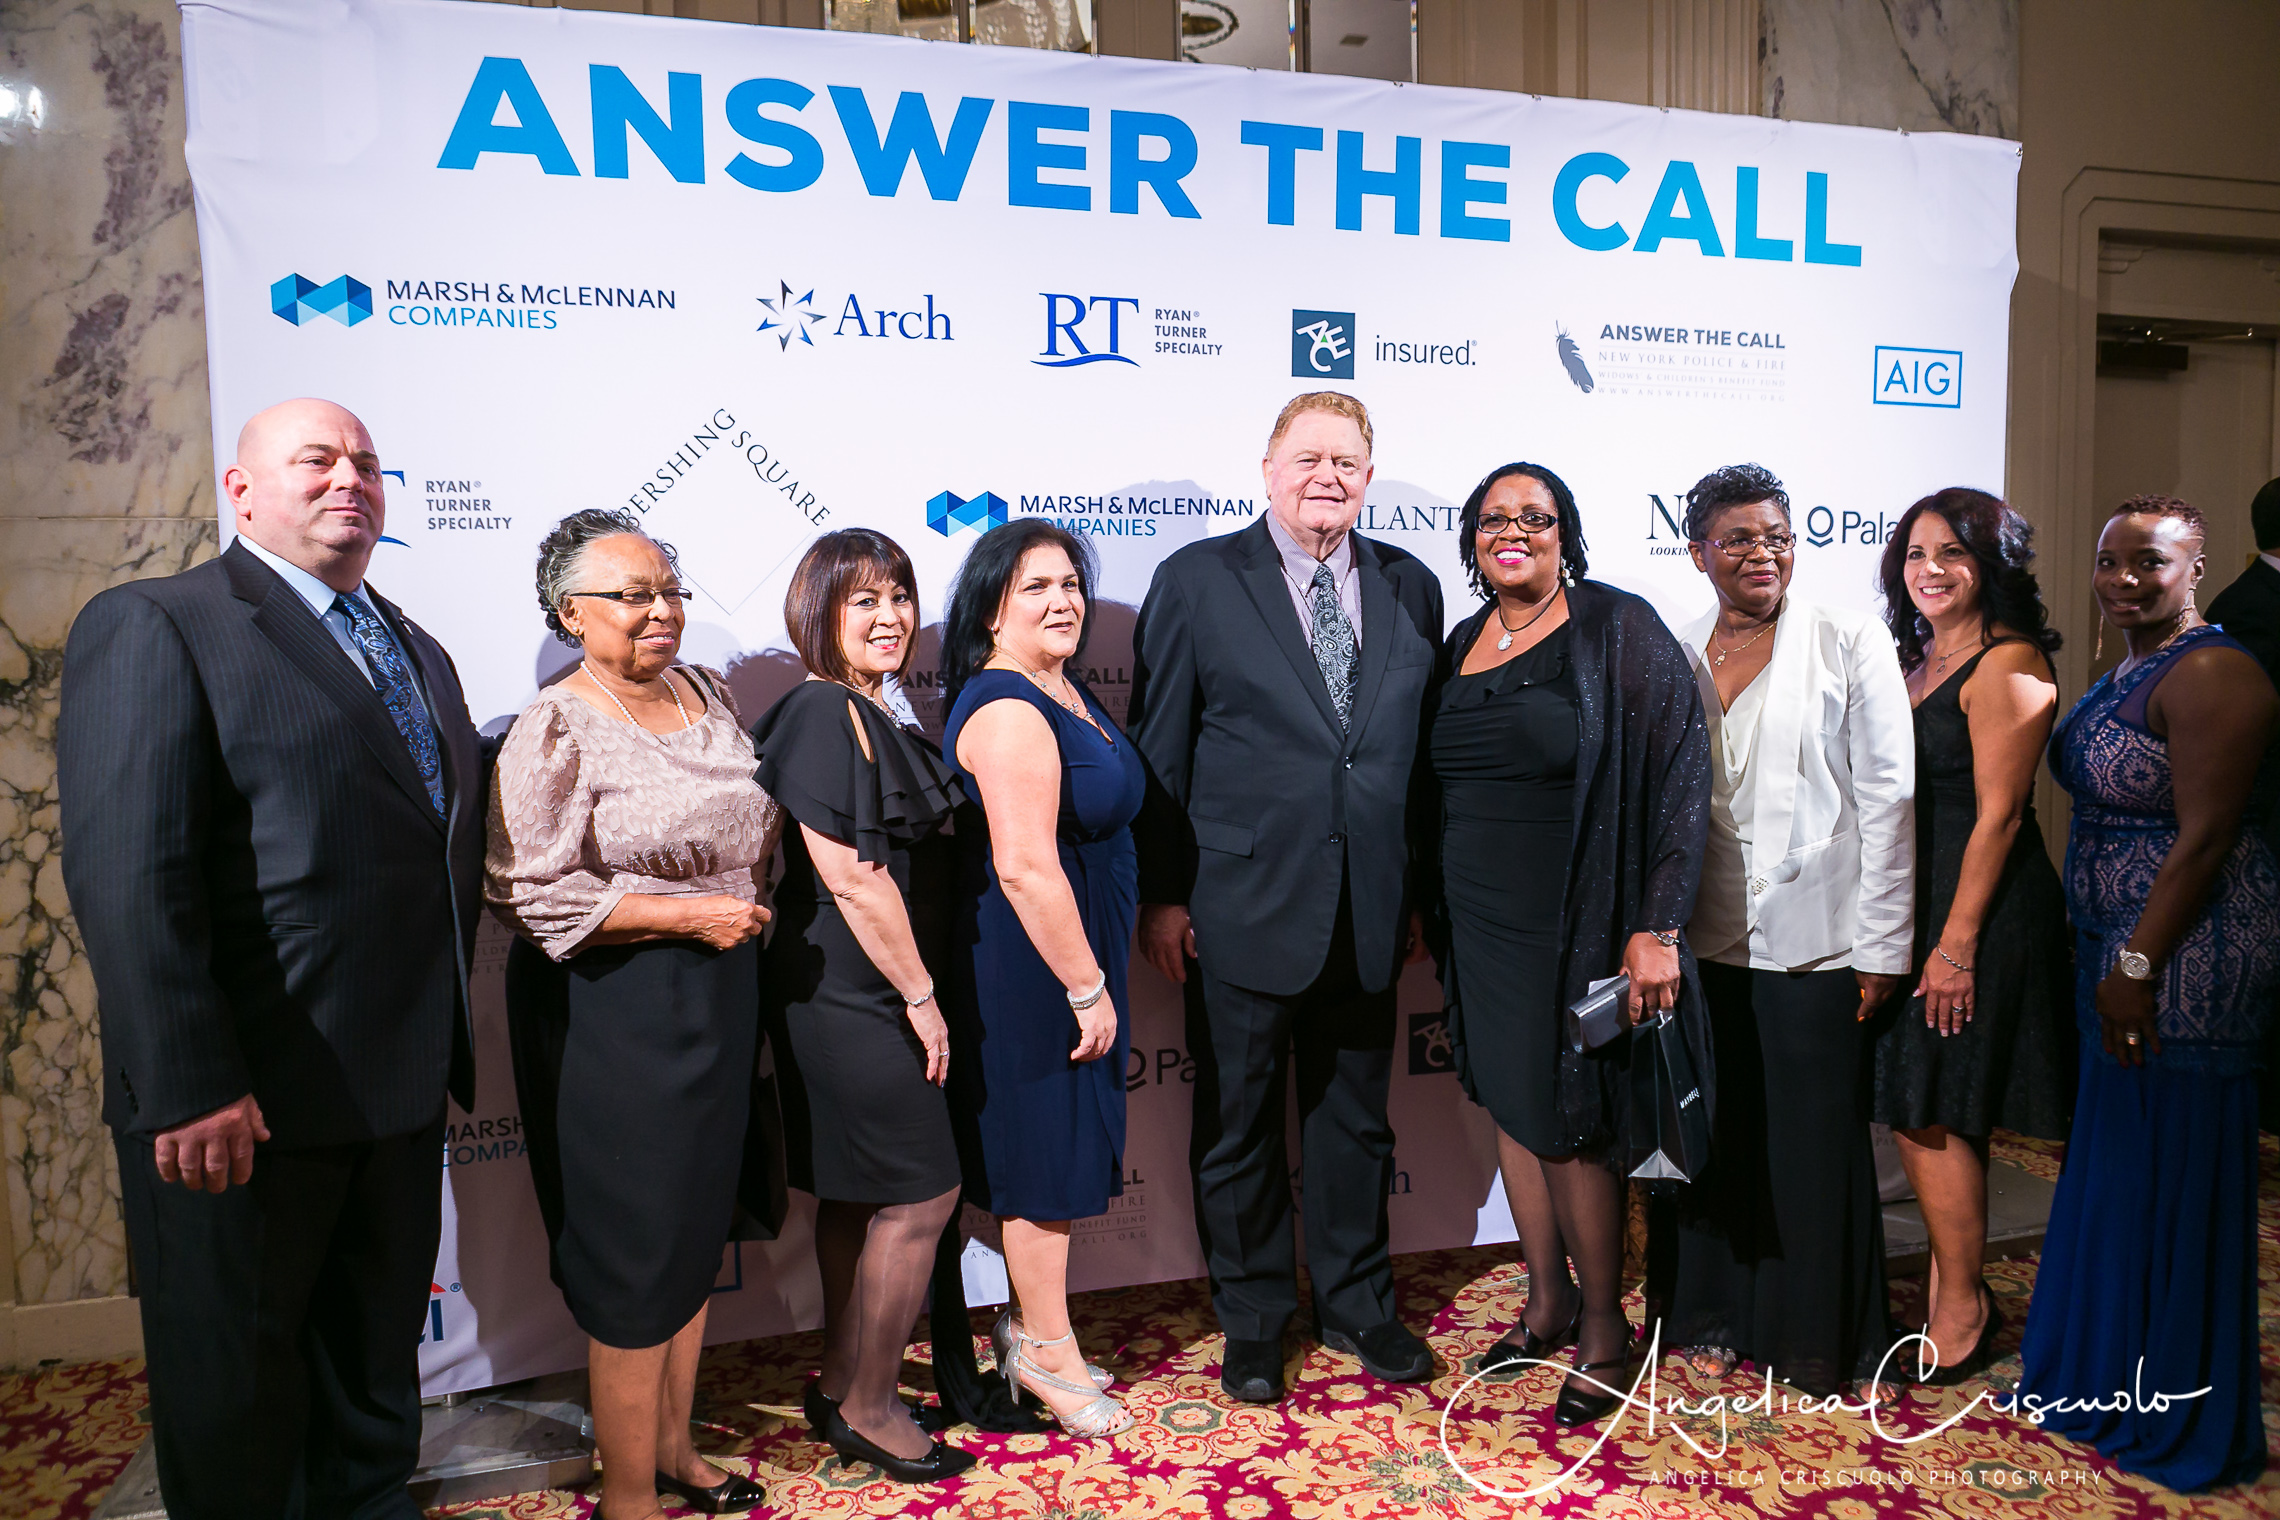 Waldorf Astoria Answer The Call Reception with Rusty Staub Gala Event